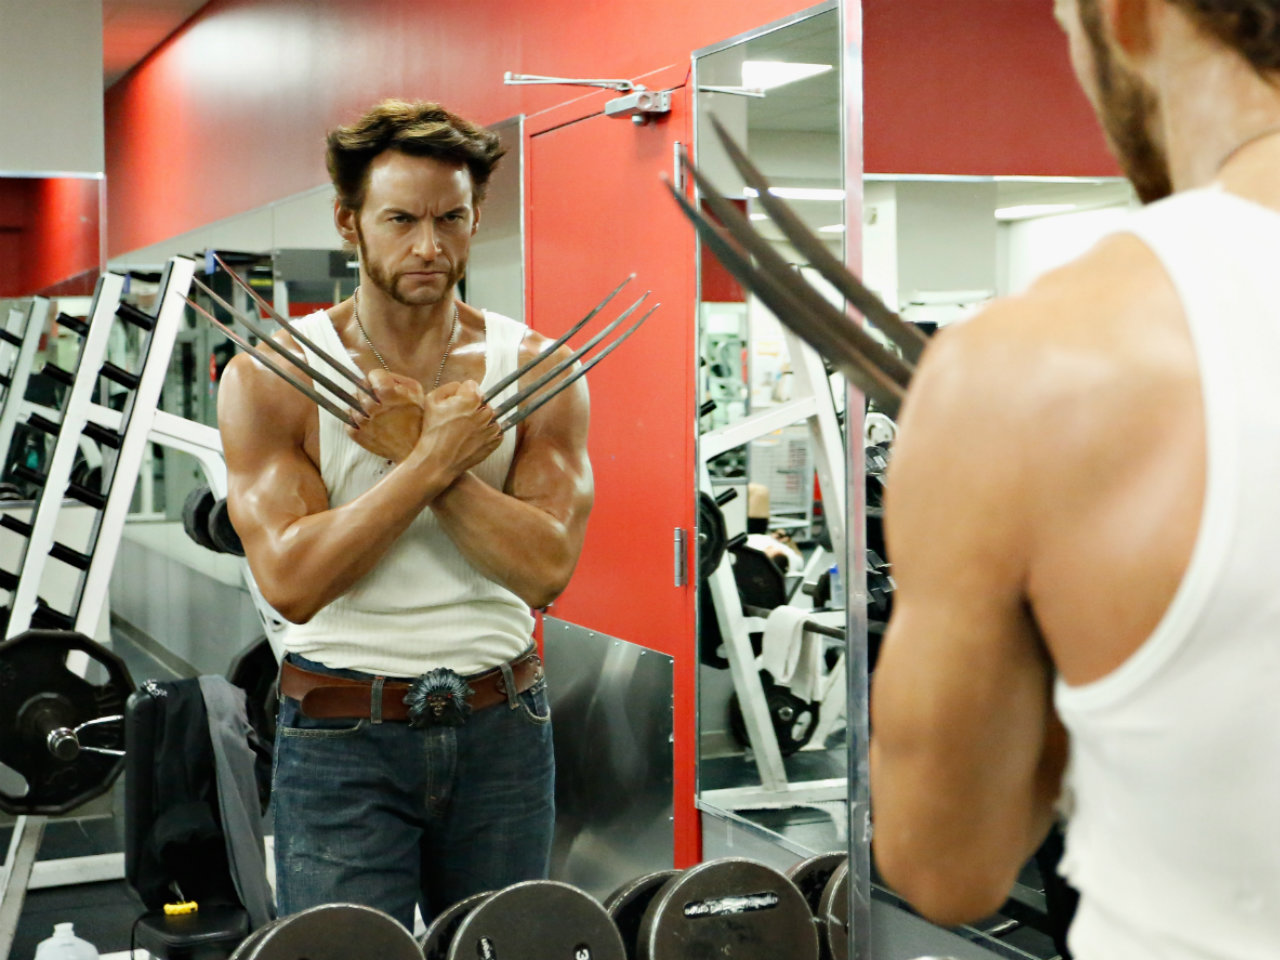 Build a bigger upper body with Hugh Jackman's chest routine